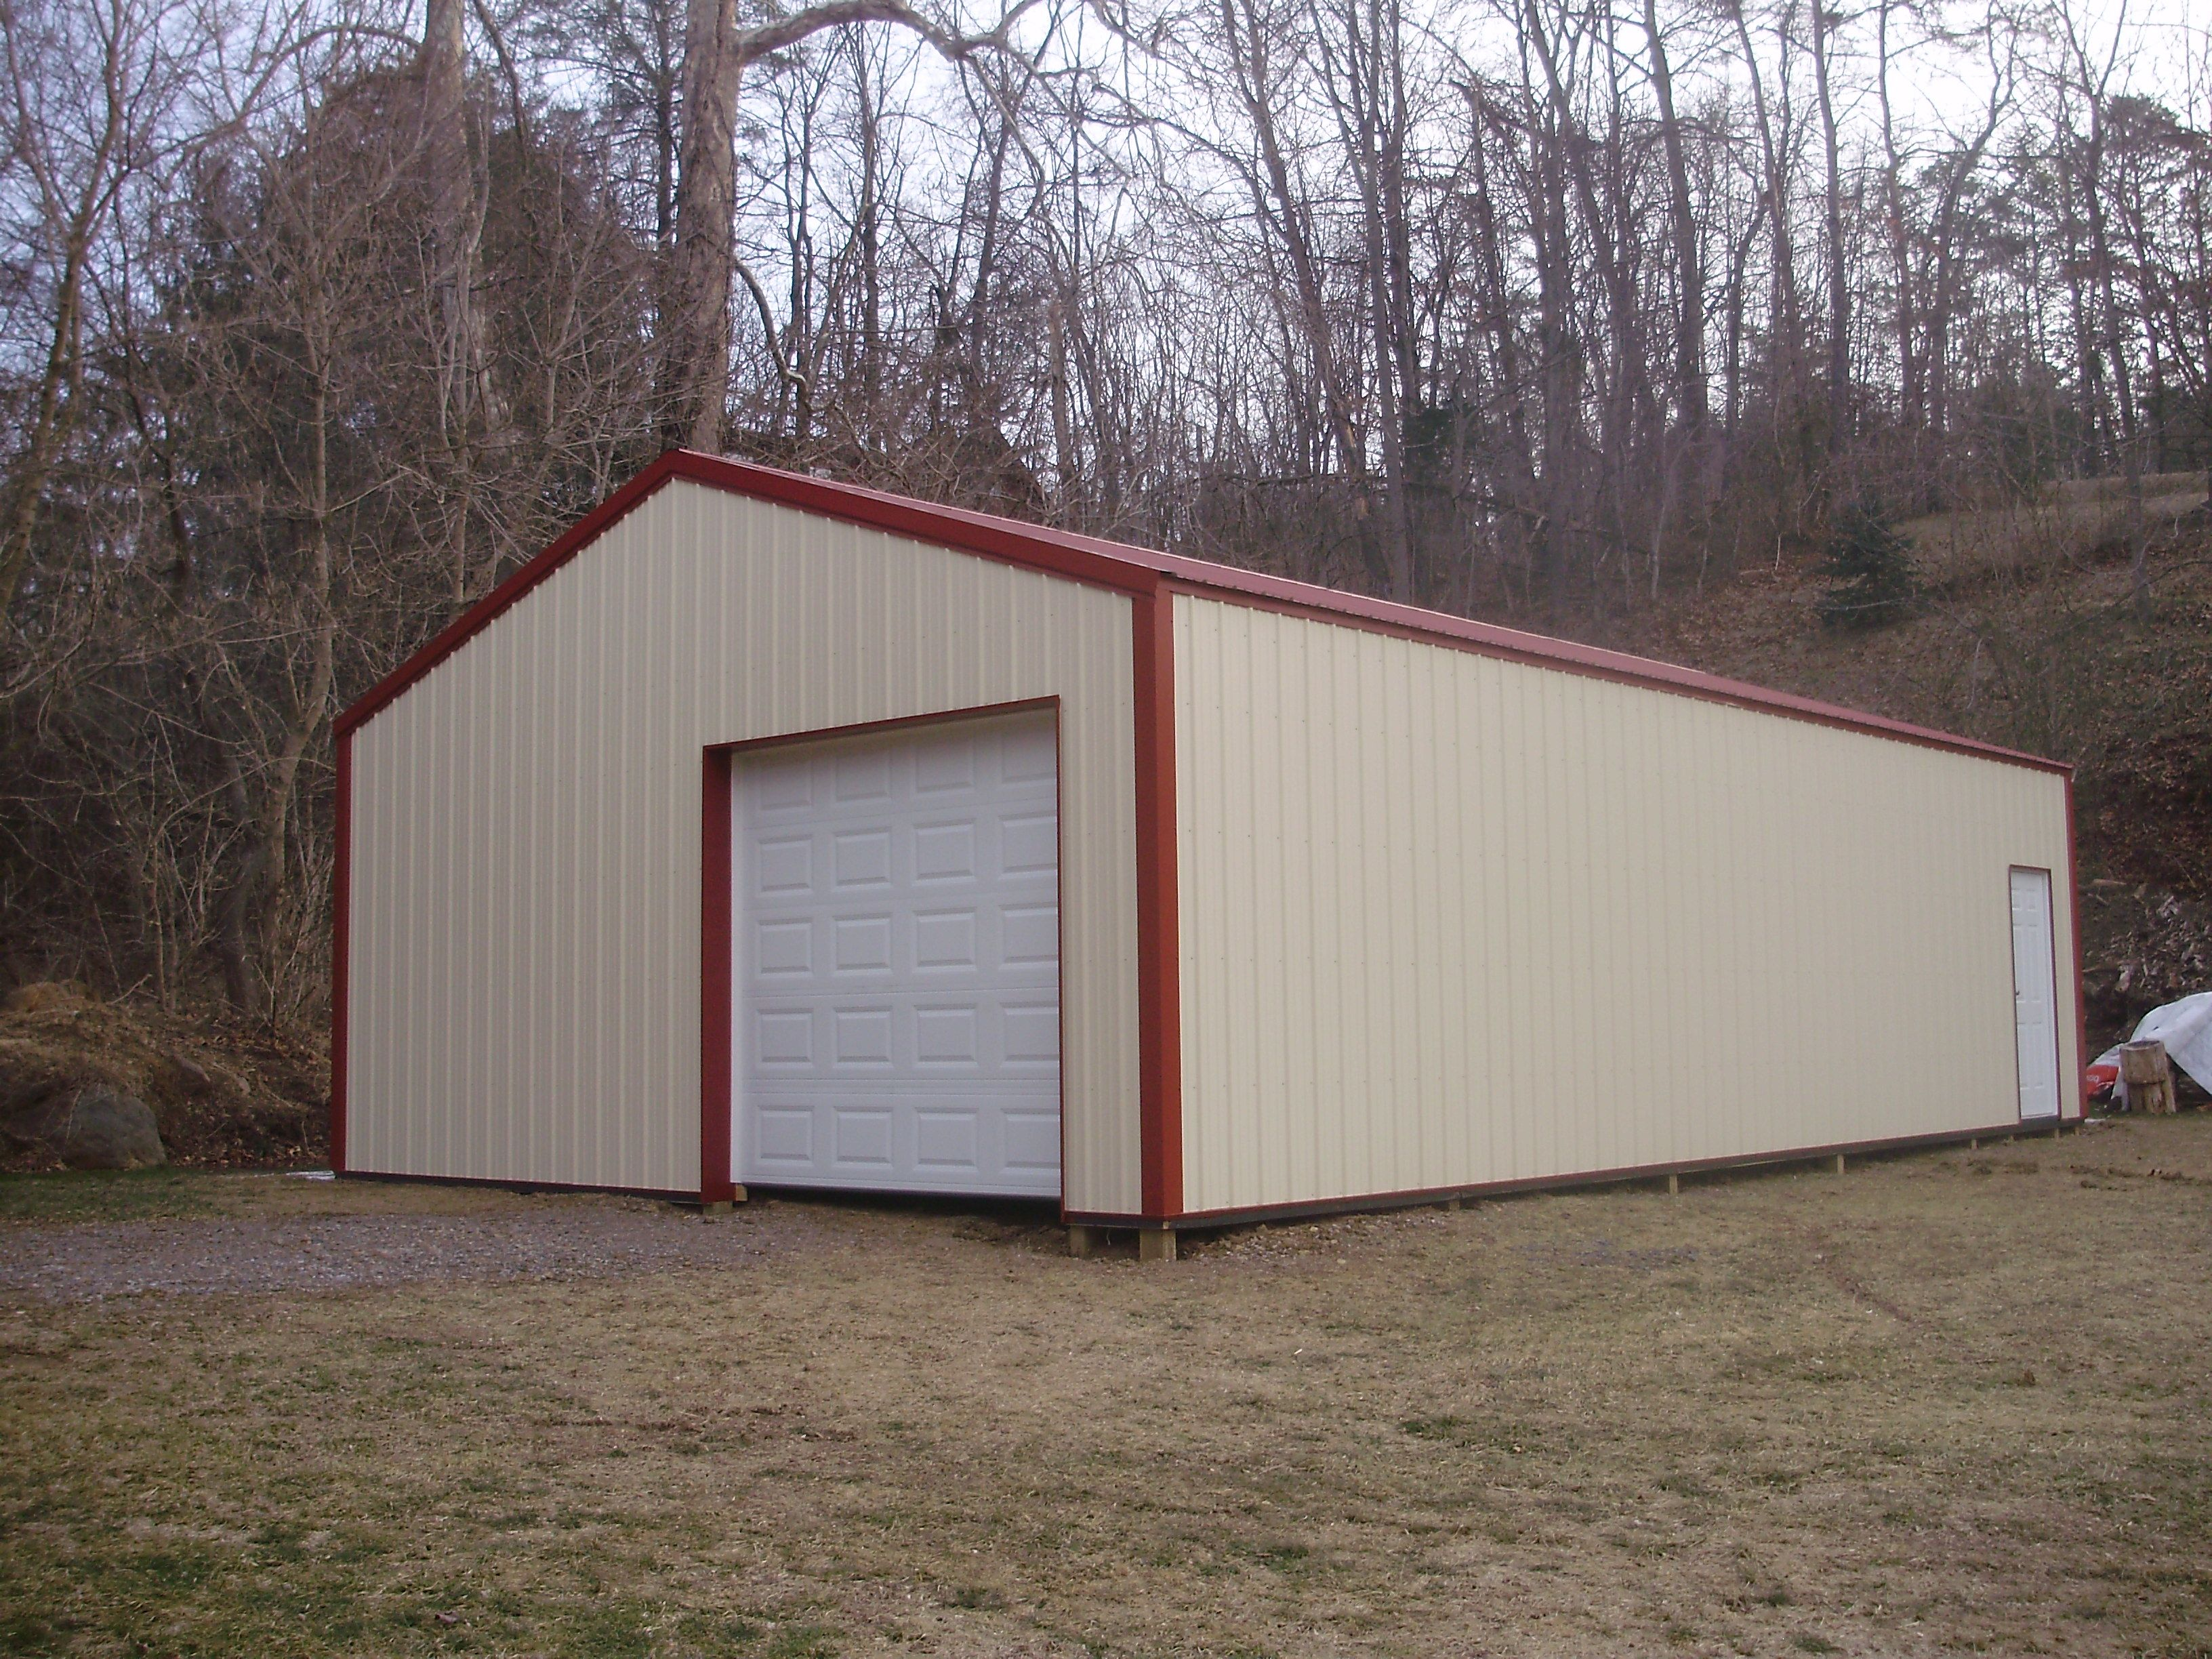 24 W X 40 L X 10 H Pioneer Pole Buildings Garage Beige With Red Roof And Trim Pole